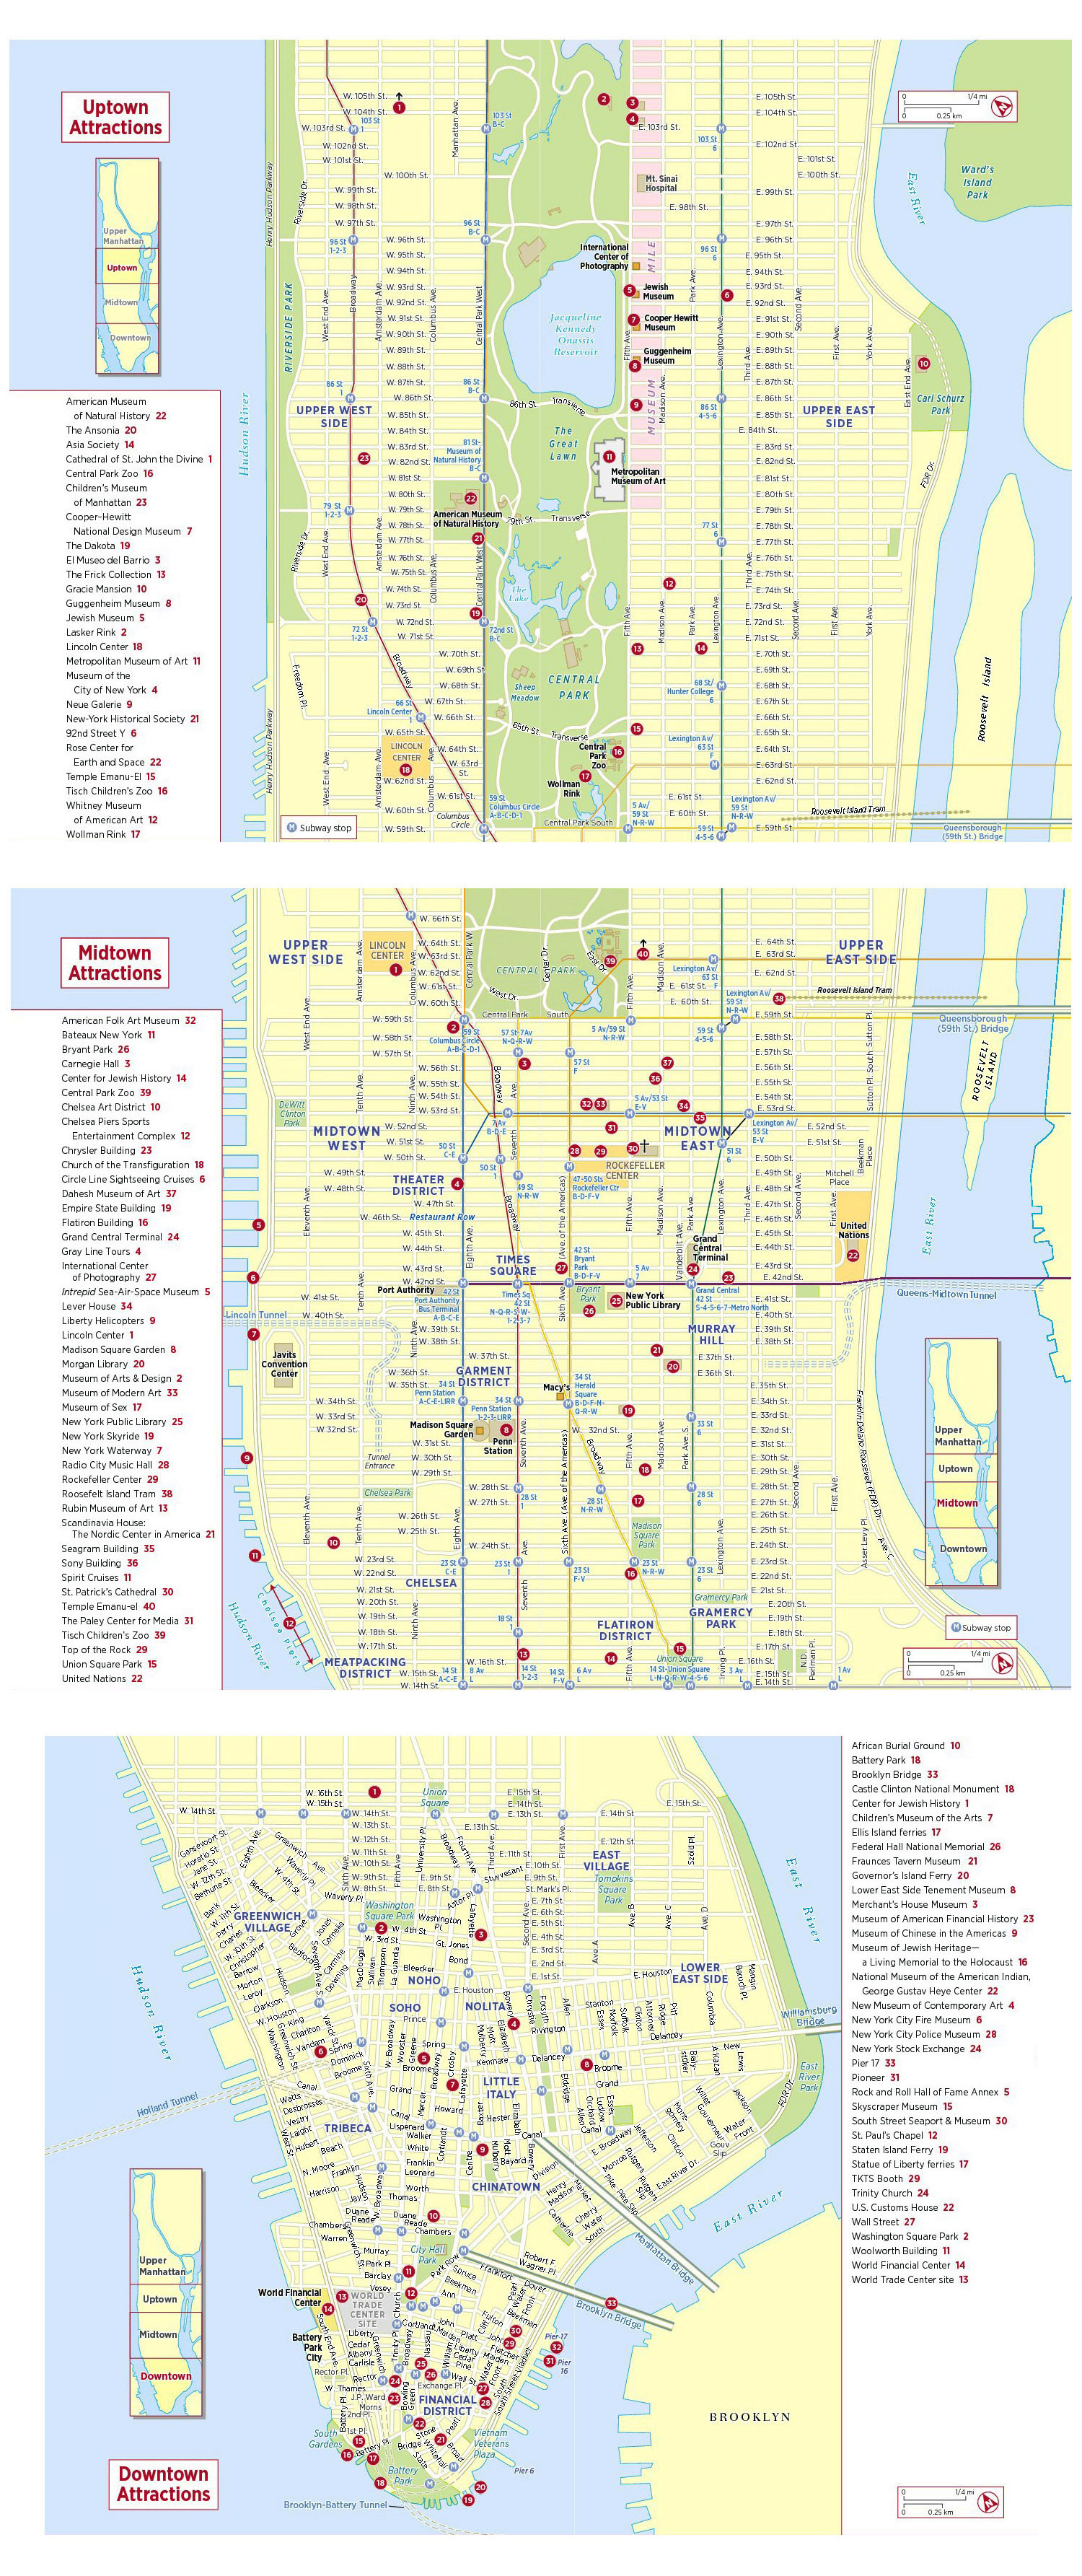 large tourist attractions map of new york city new york city ny large tourist attractions map